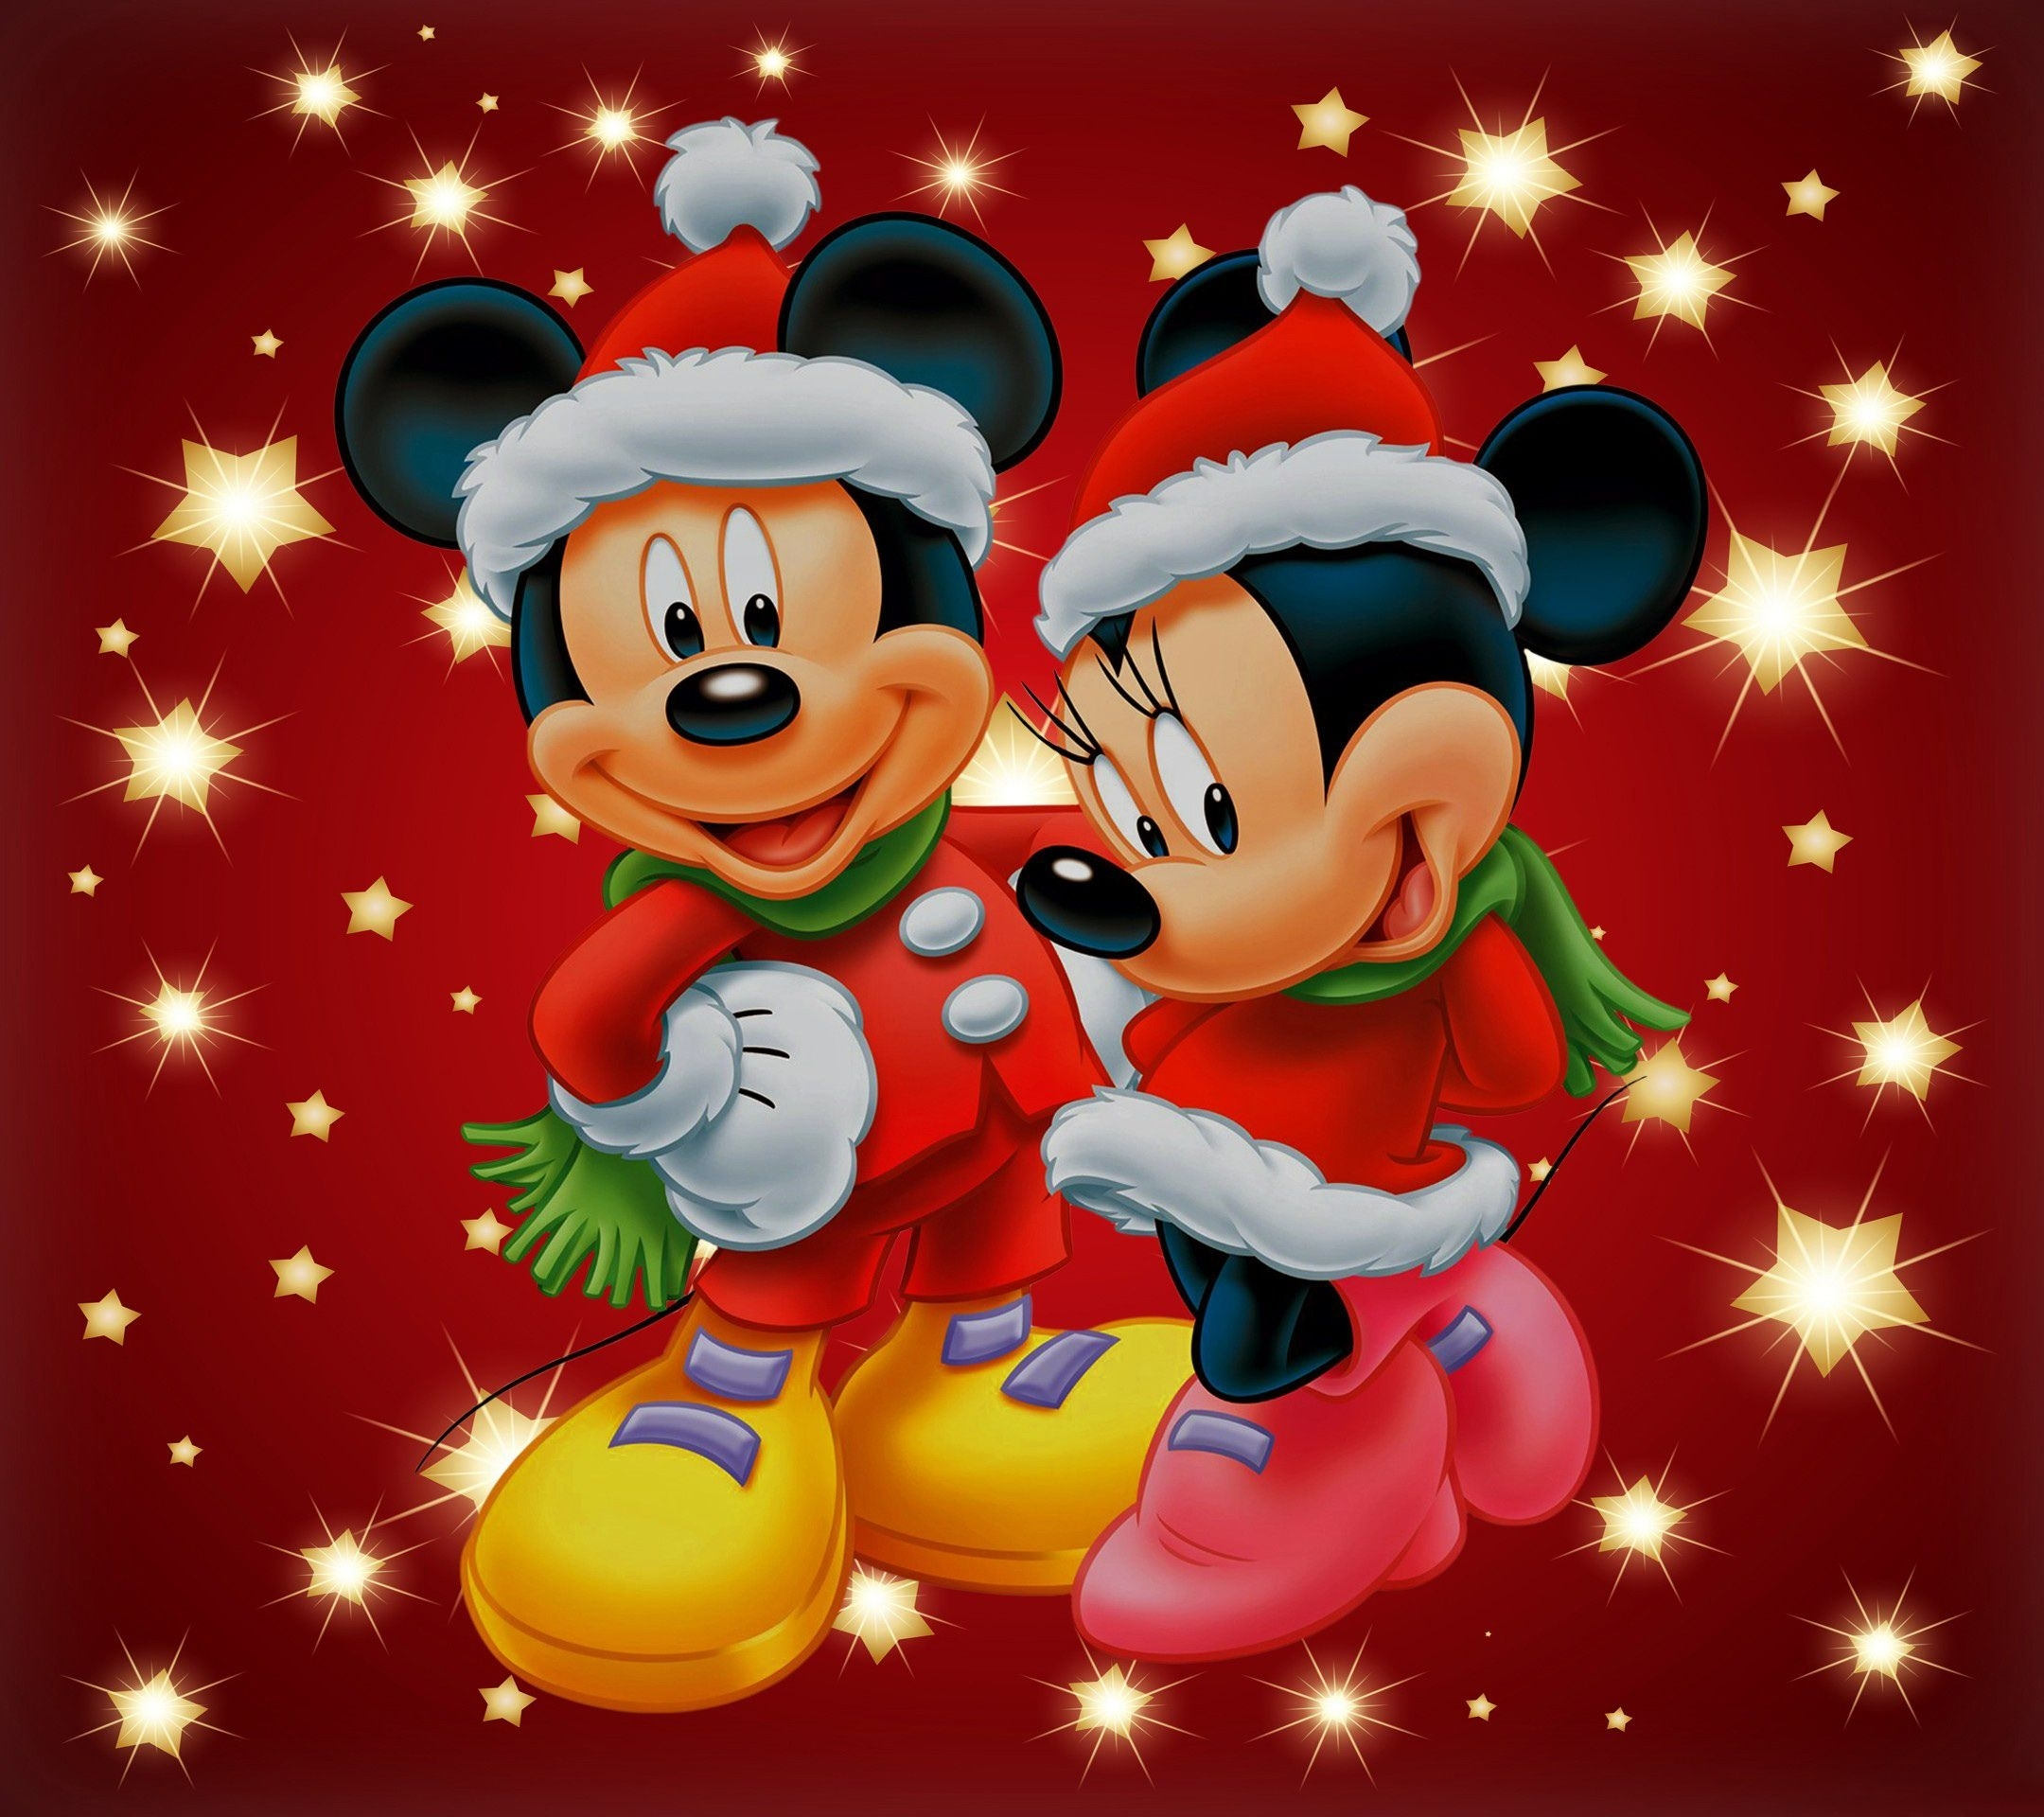 mickey mouse ipad wallpaper - bing images | christmas wallpaper